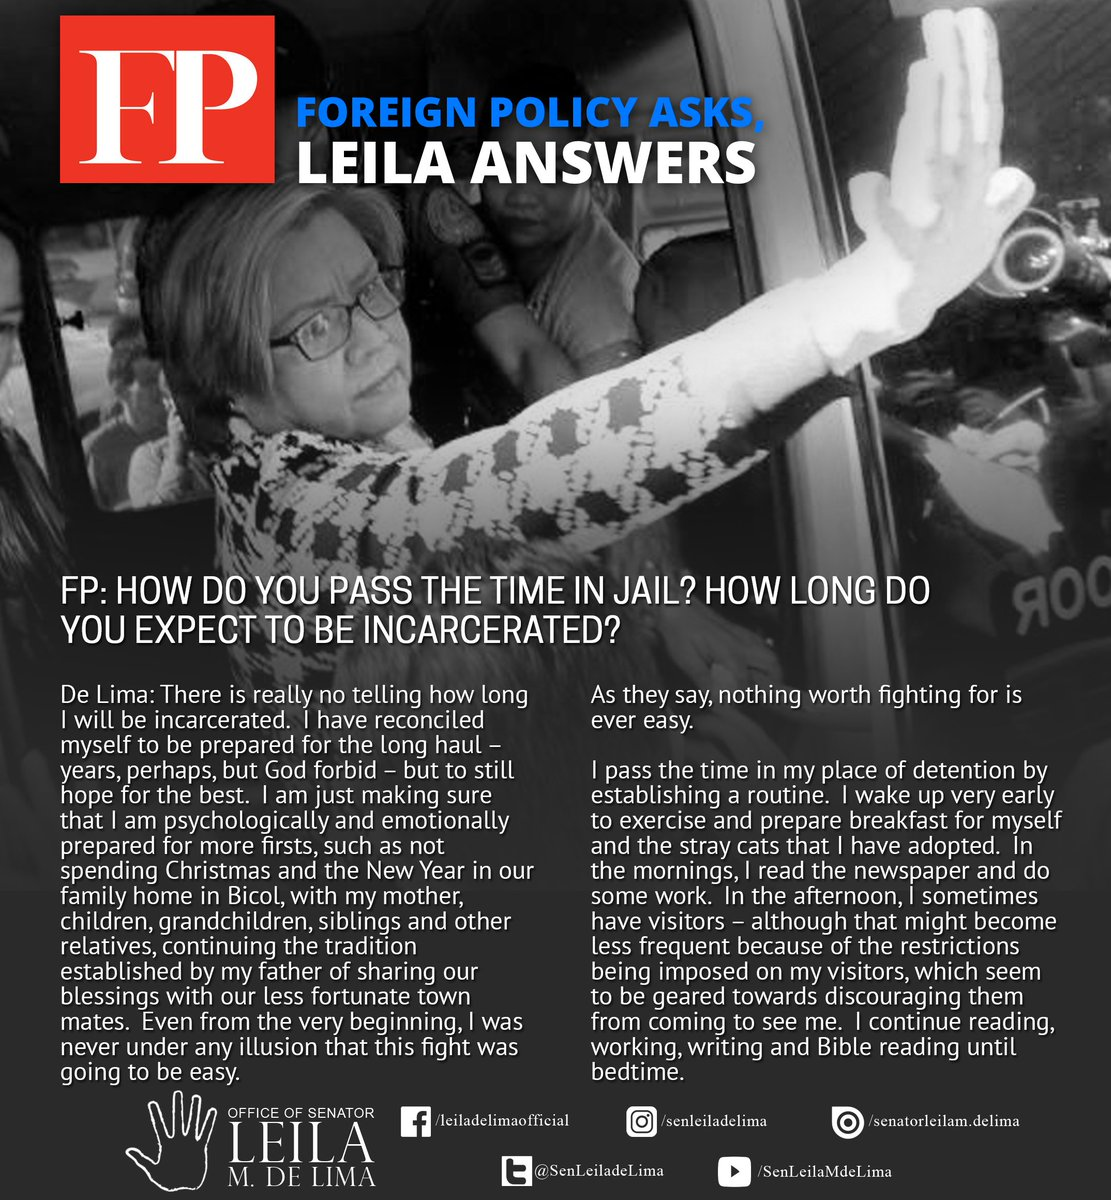 Leila de lima on twitter icymi excerpts from the q and a with leila de lima on twitter icymi excerpts from the q and a with foreign policy magazine on bestowing upon her the global rethinker award for 2017 publicscrutiny Gallery